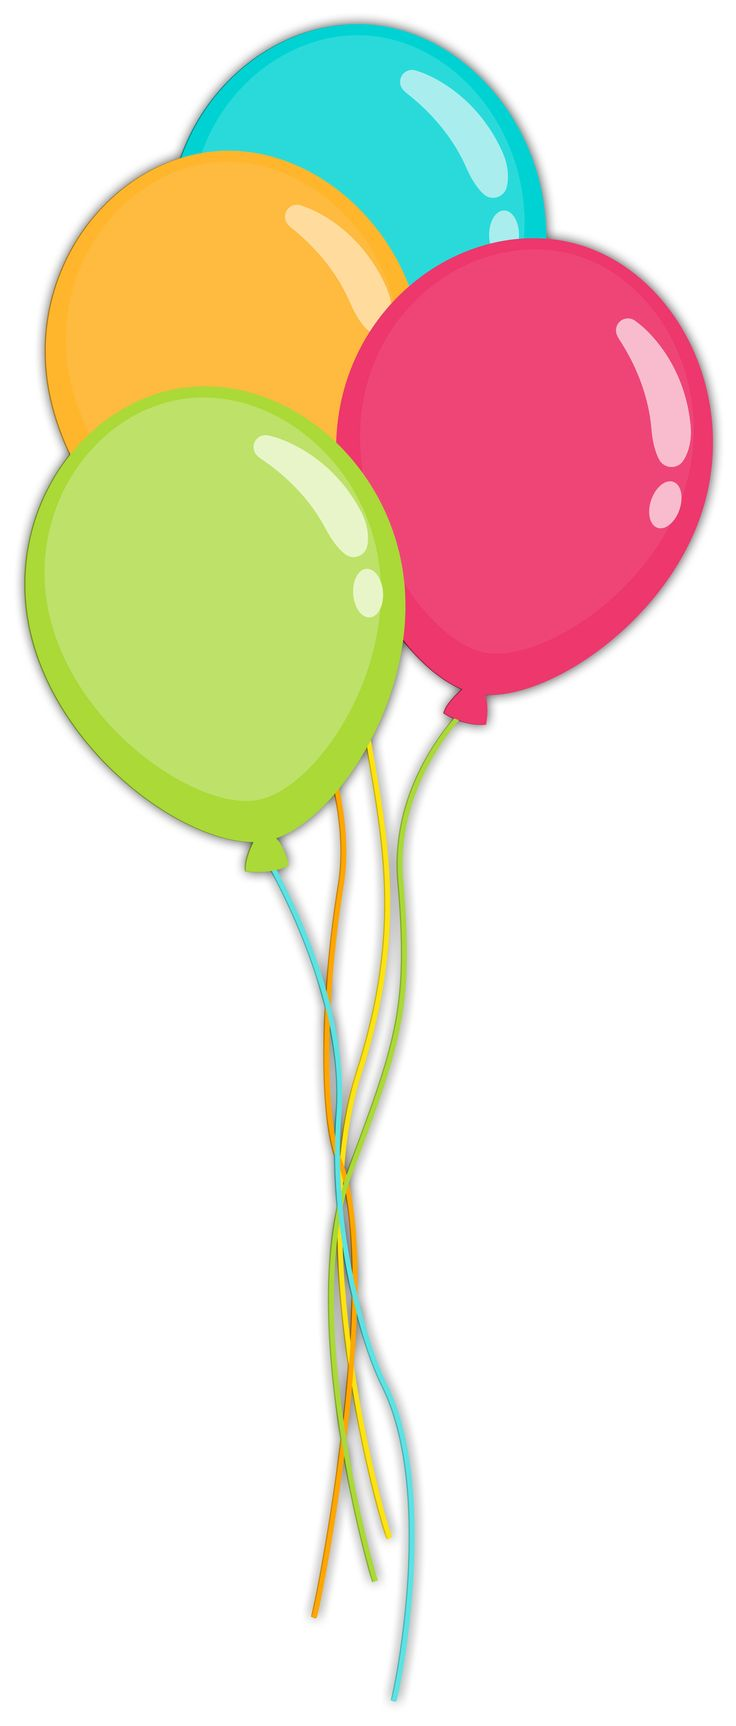 736x1726 167 Best Balloons Images Pictures, Birth Day